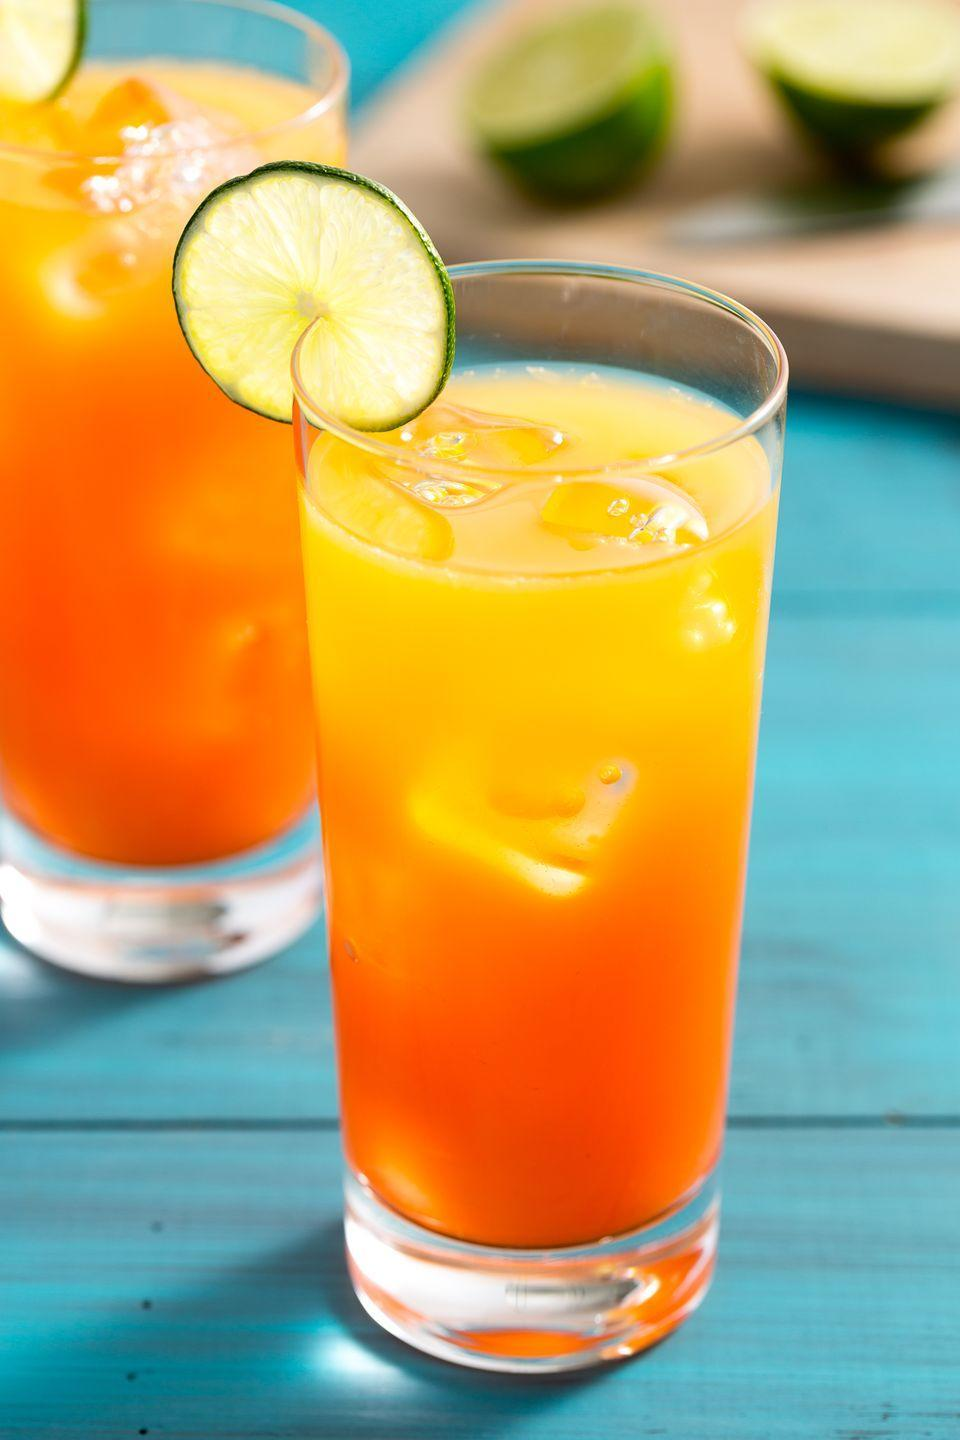 """<p>Our rum-ified spin on the classic Tequila Sunrise is simple yet sultry.</p><p>Get the recipe from <a href=""""https://www.delish.com/cooking/recipe-ideas/recipes/a3383/rum-sunset-drink-recipes/"""" rel=""""nofollow noopener"""" target=""""_blank"""" data-ylk=""""slk:Delish"""" class=""""link rapid-noclick-resp"""">Delish</a>.</p>"""